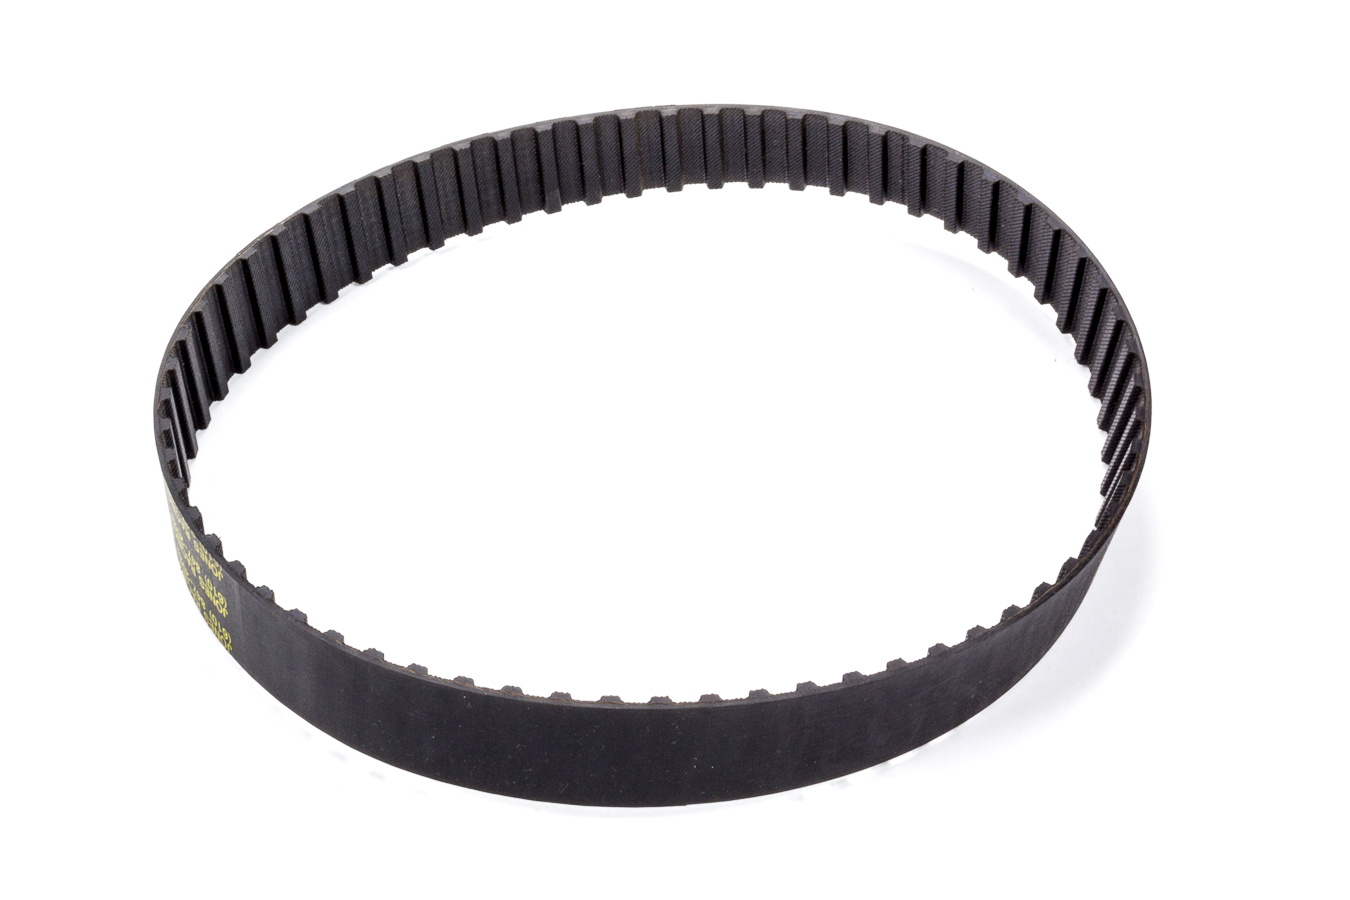 Jones Racing Products 236-L-100 Gilmer Drive Belt, 24.625 in Long, 1 in Wide, 3/8 in Pitch, Each